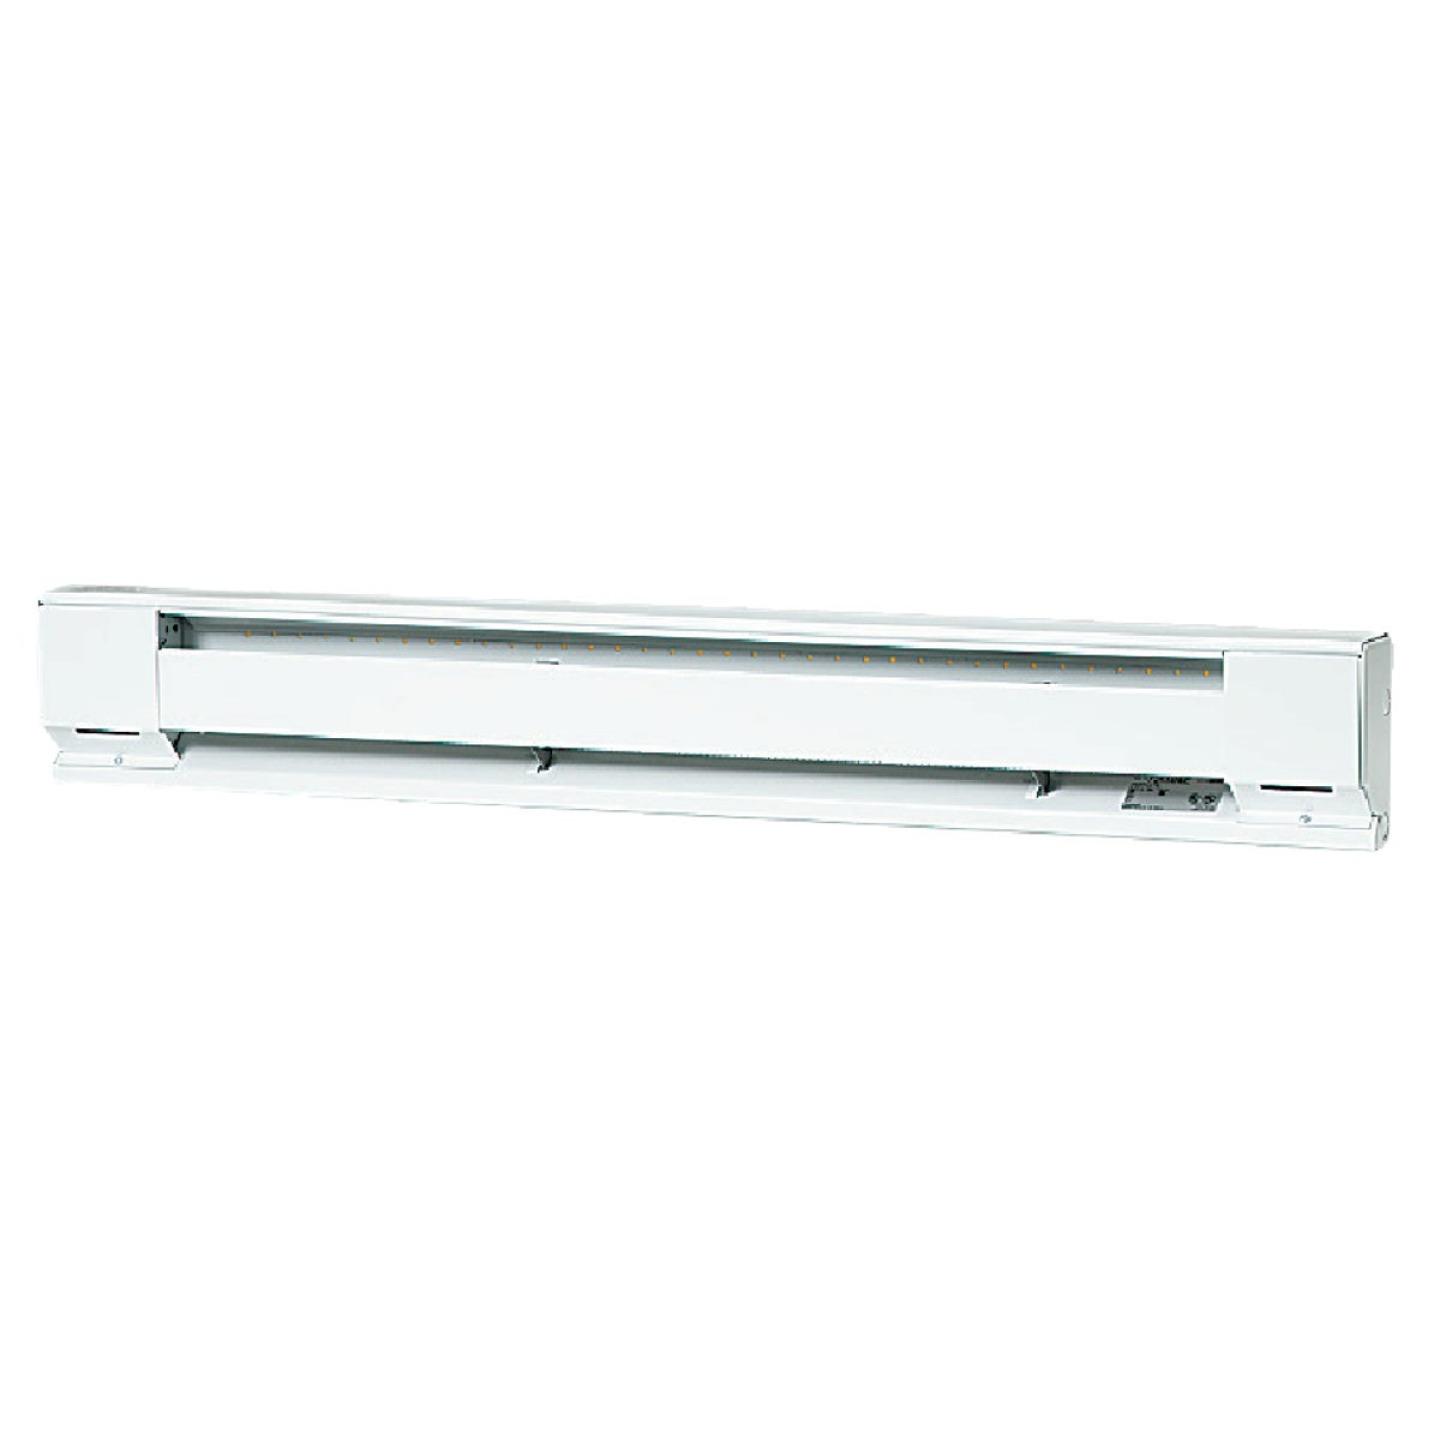 Fahrenheat 48 In. 1000-Watt 120-Volt Electric Baseboard Heater, Northern White Image 1